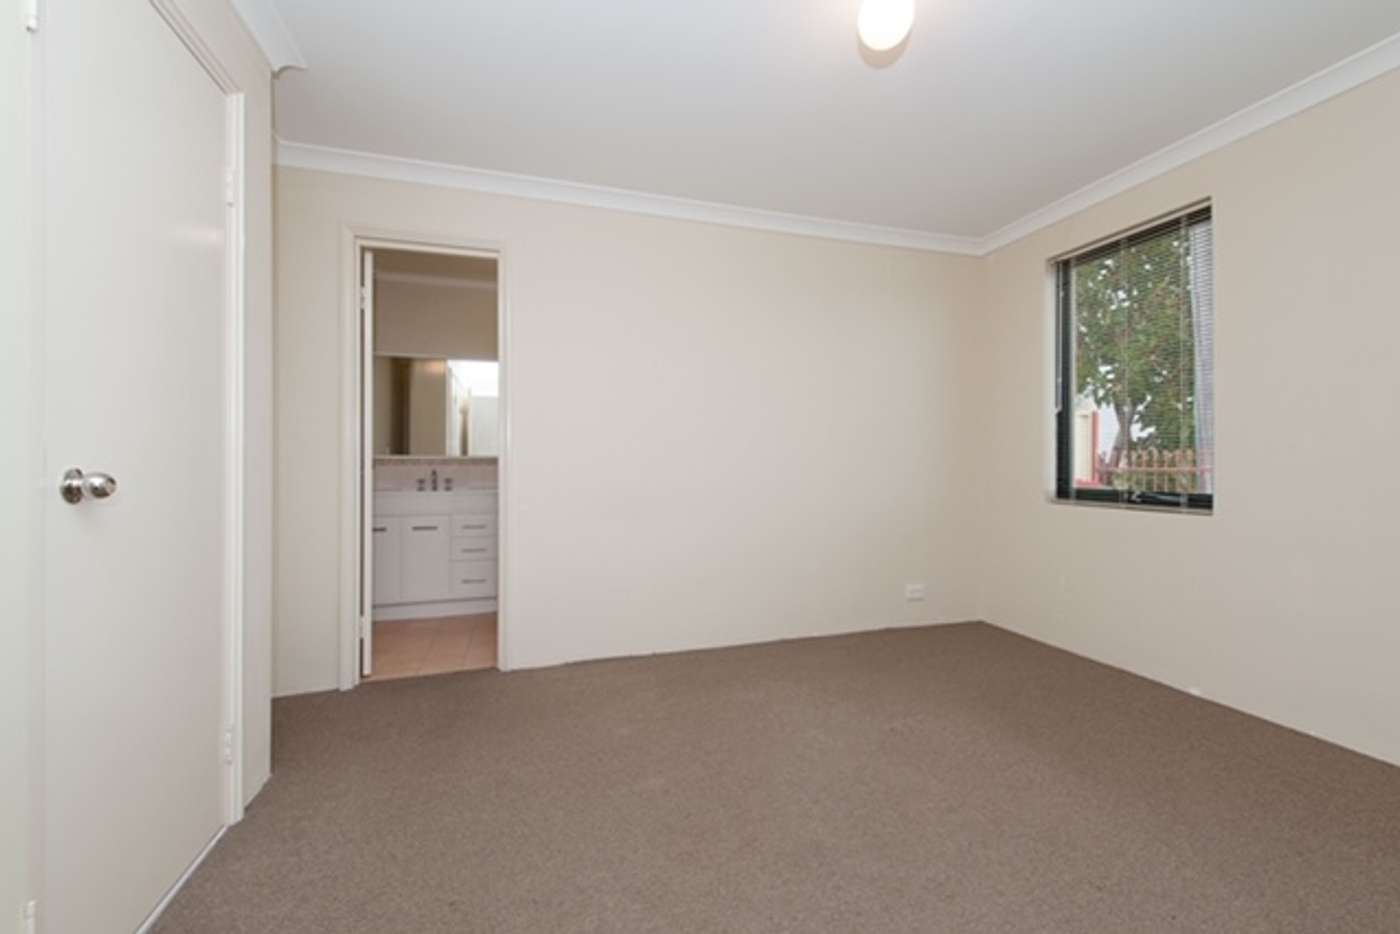 Sixth view of Homely villa listing, 7/3 Stoke Place, Morley WA 6062